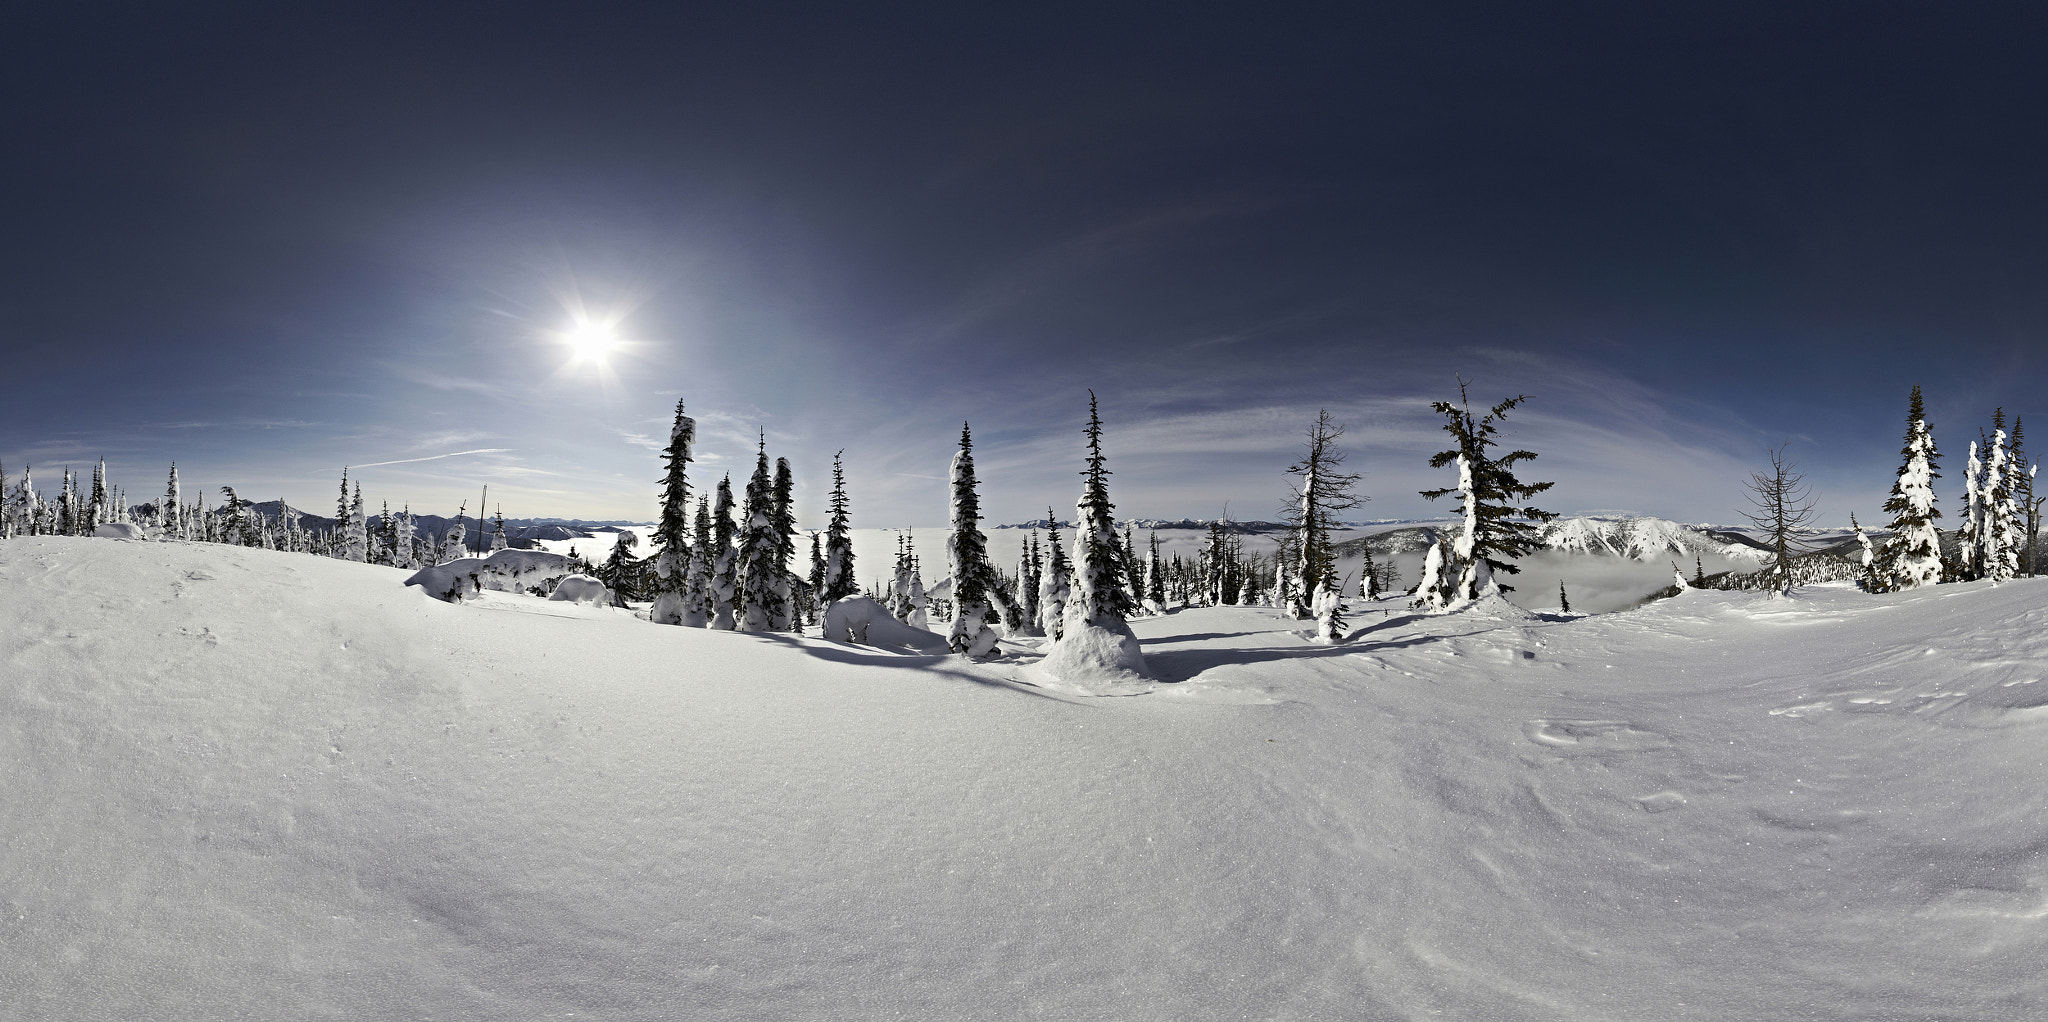 Photograph Cloud Invert Panoramic by Rob Antill on 500px